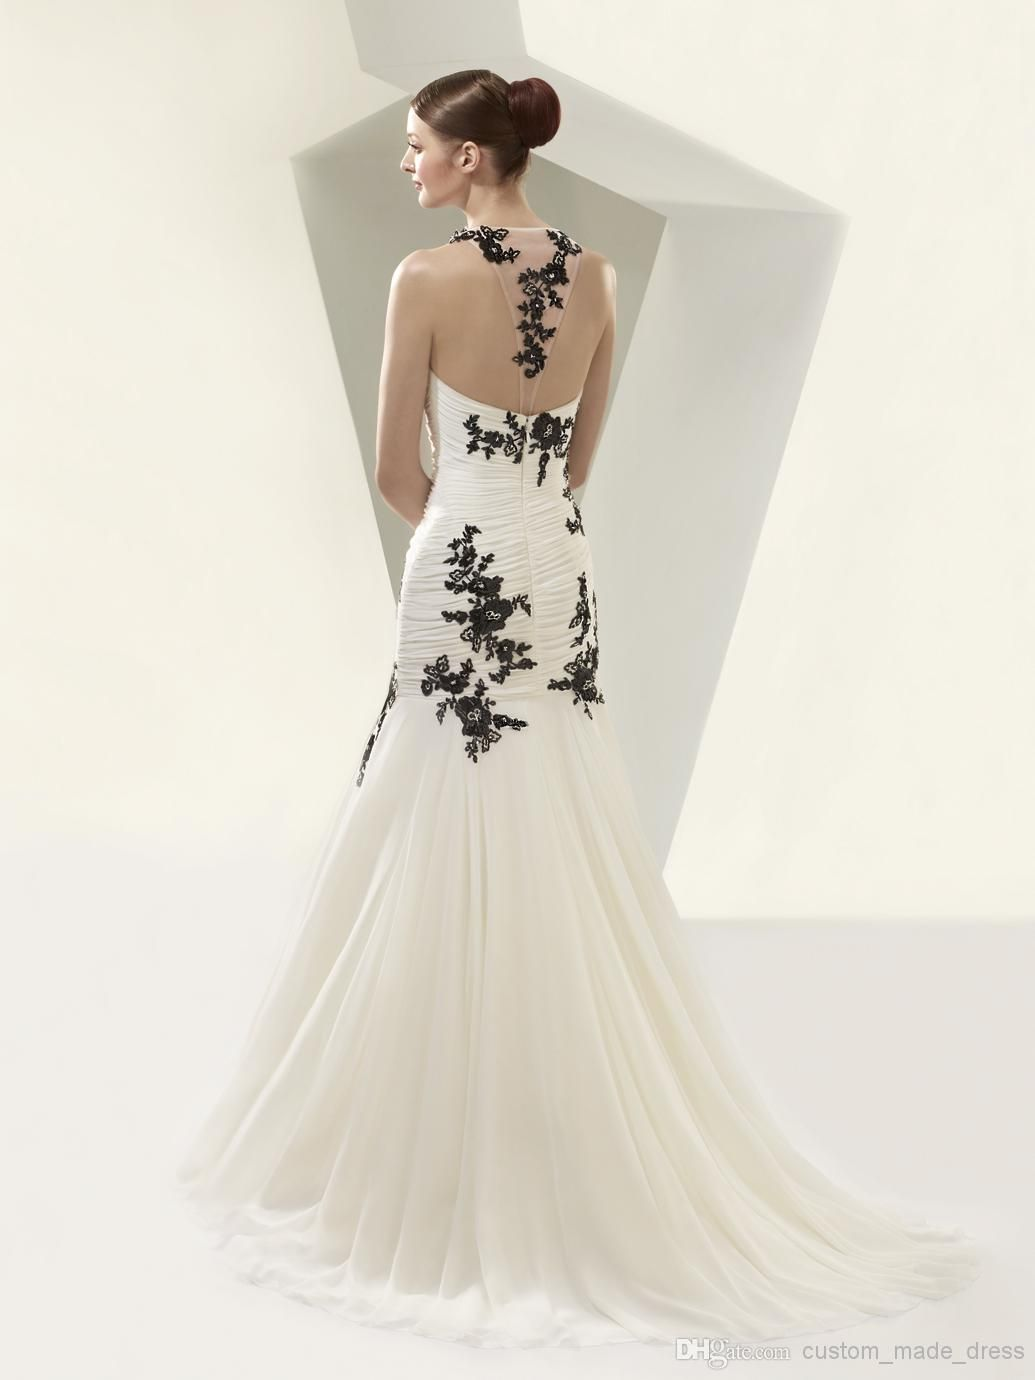 Beautiful By Enzoani Illusion Tulle And Black Lace Liques Mermaid Wedding Dresses 2016 Open Back Jewel